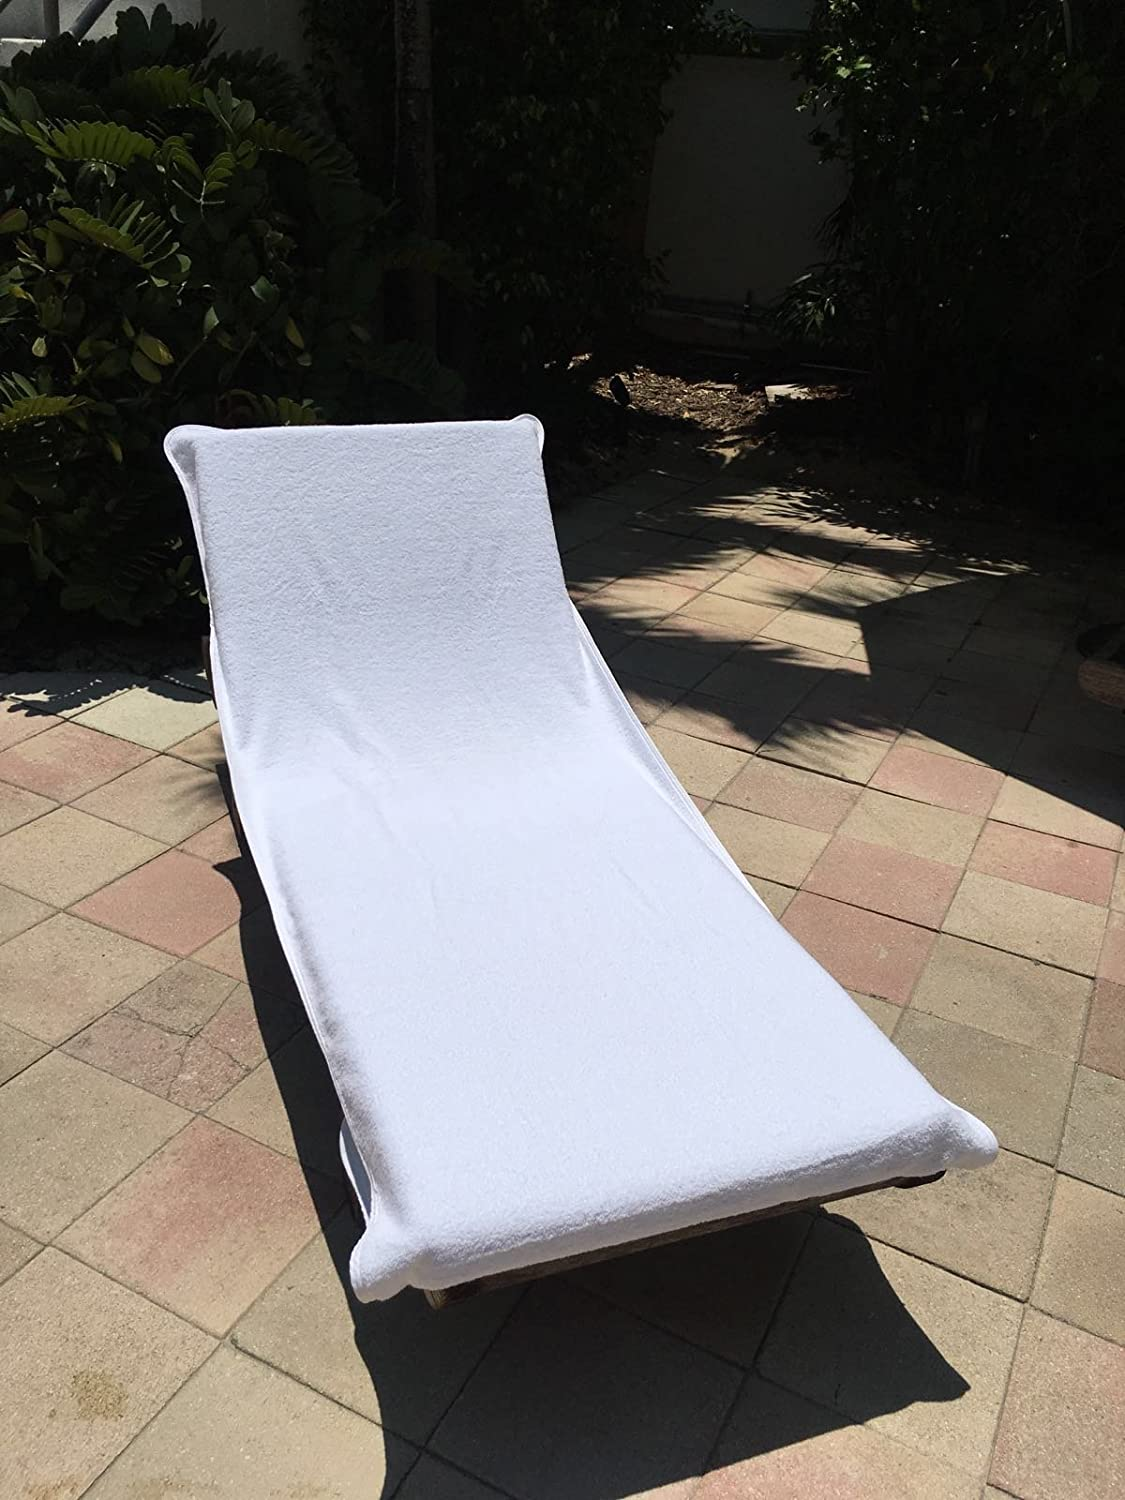 Chaise lounge chair cotton towel with flap 32 x 87 white for Chaise lounge cover towel